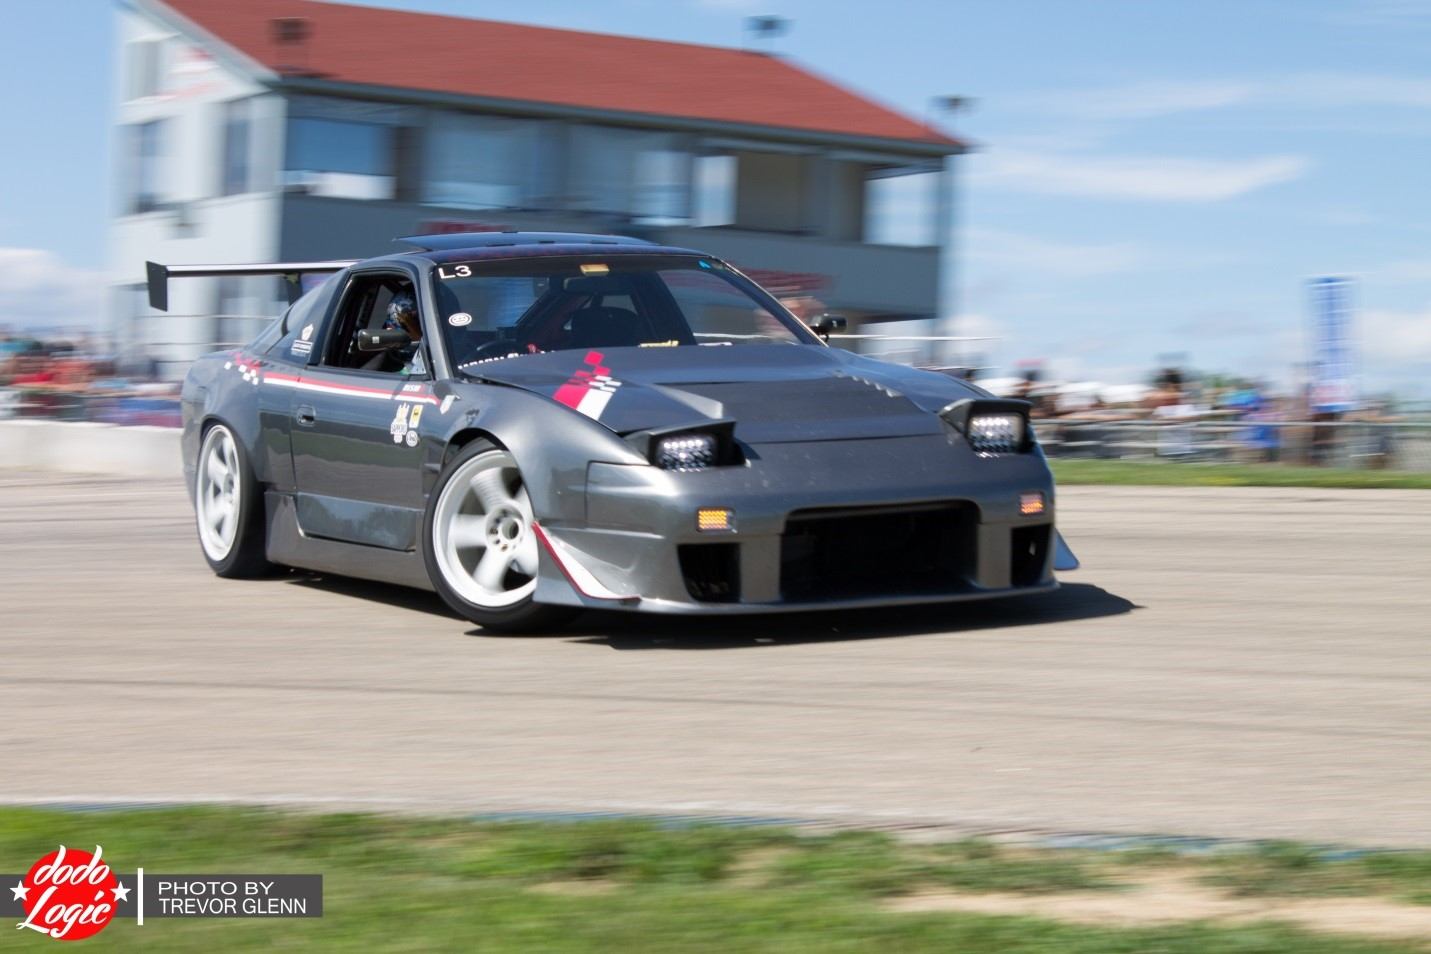 It was nice to get out on the track and get some better shots. Another fine example of a car with exquisite styling is Josh's 180sx, sporting the full KOGUCHI look, as well as the front bumper!